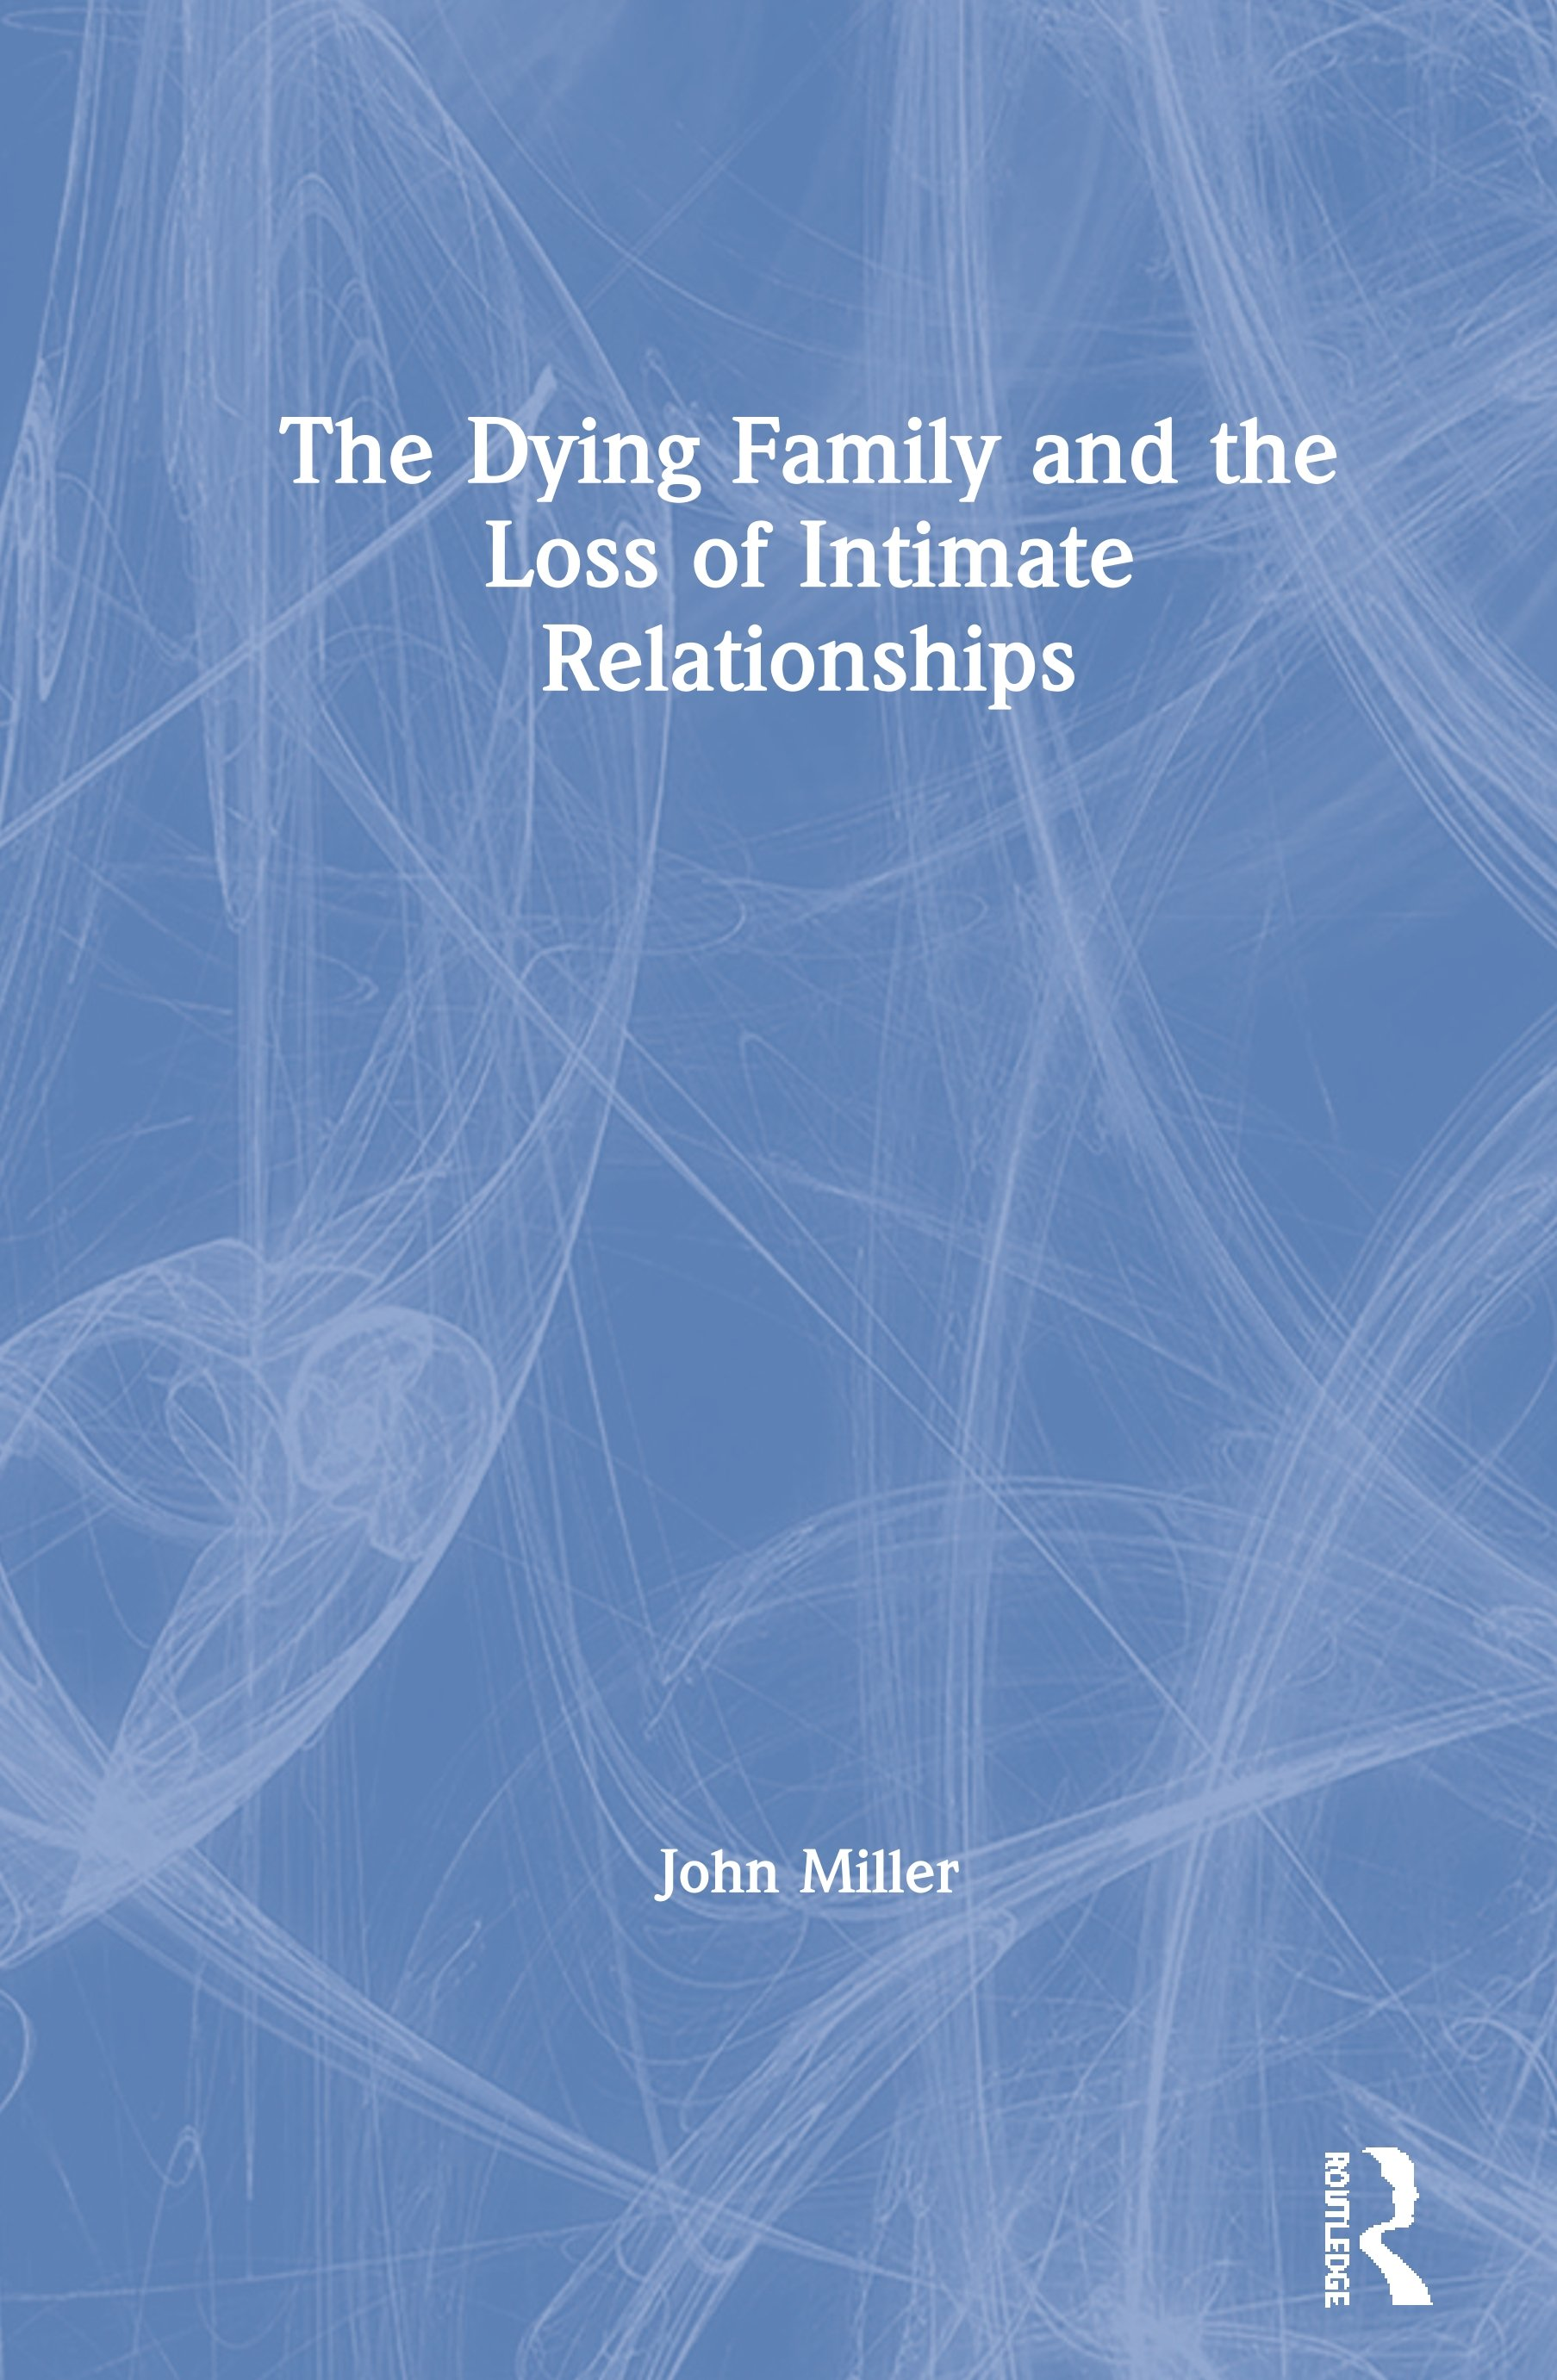 The Dying Family and the Loss of Intimate Relationships book cover